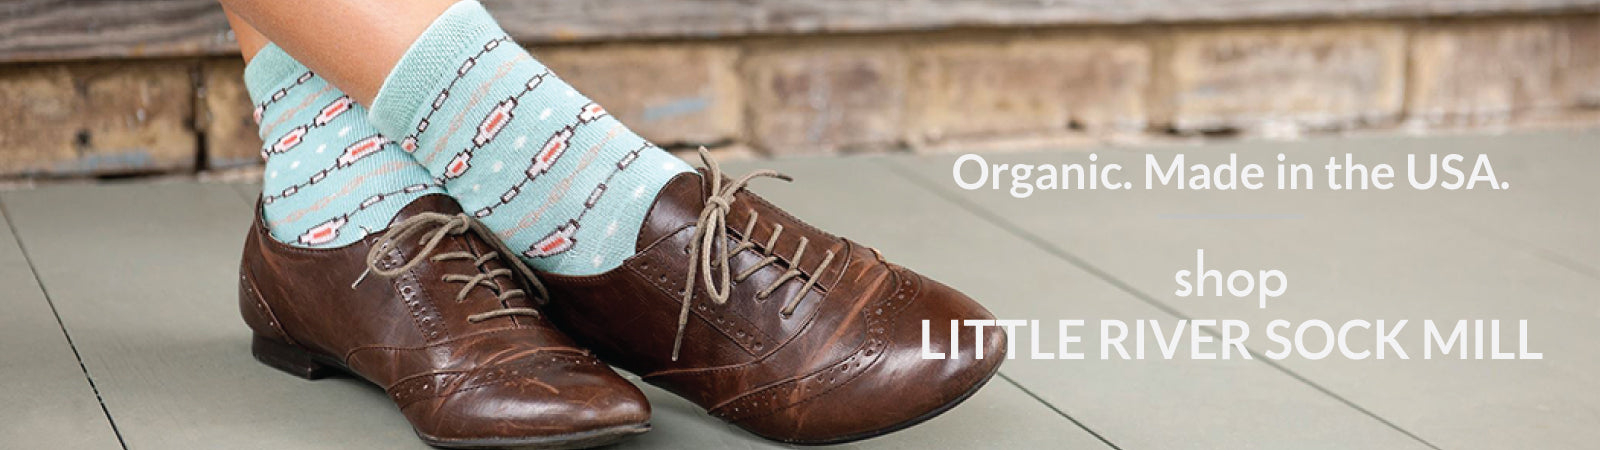 Shop organic cotton socks from Little River Sock Mill, made in the USA.